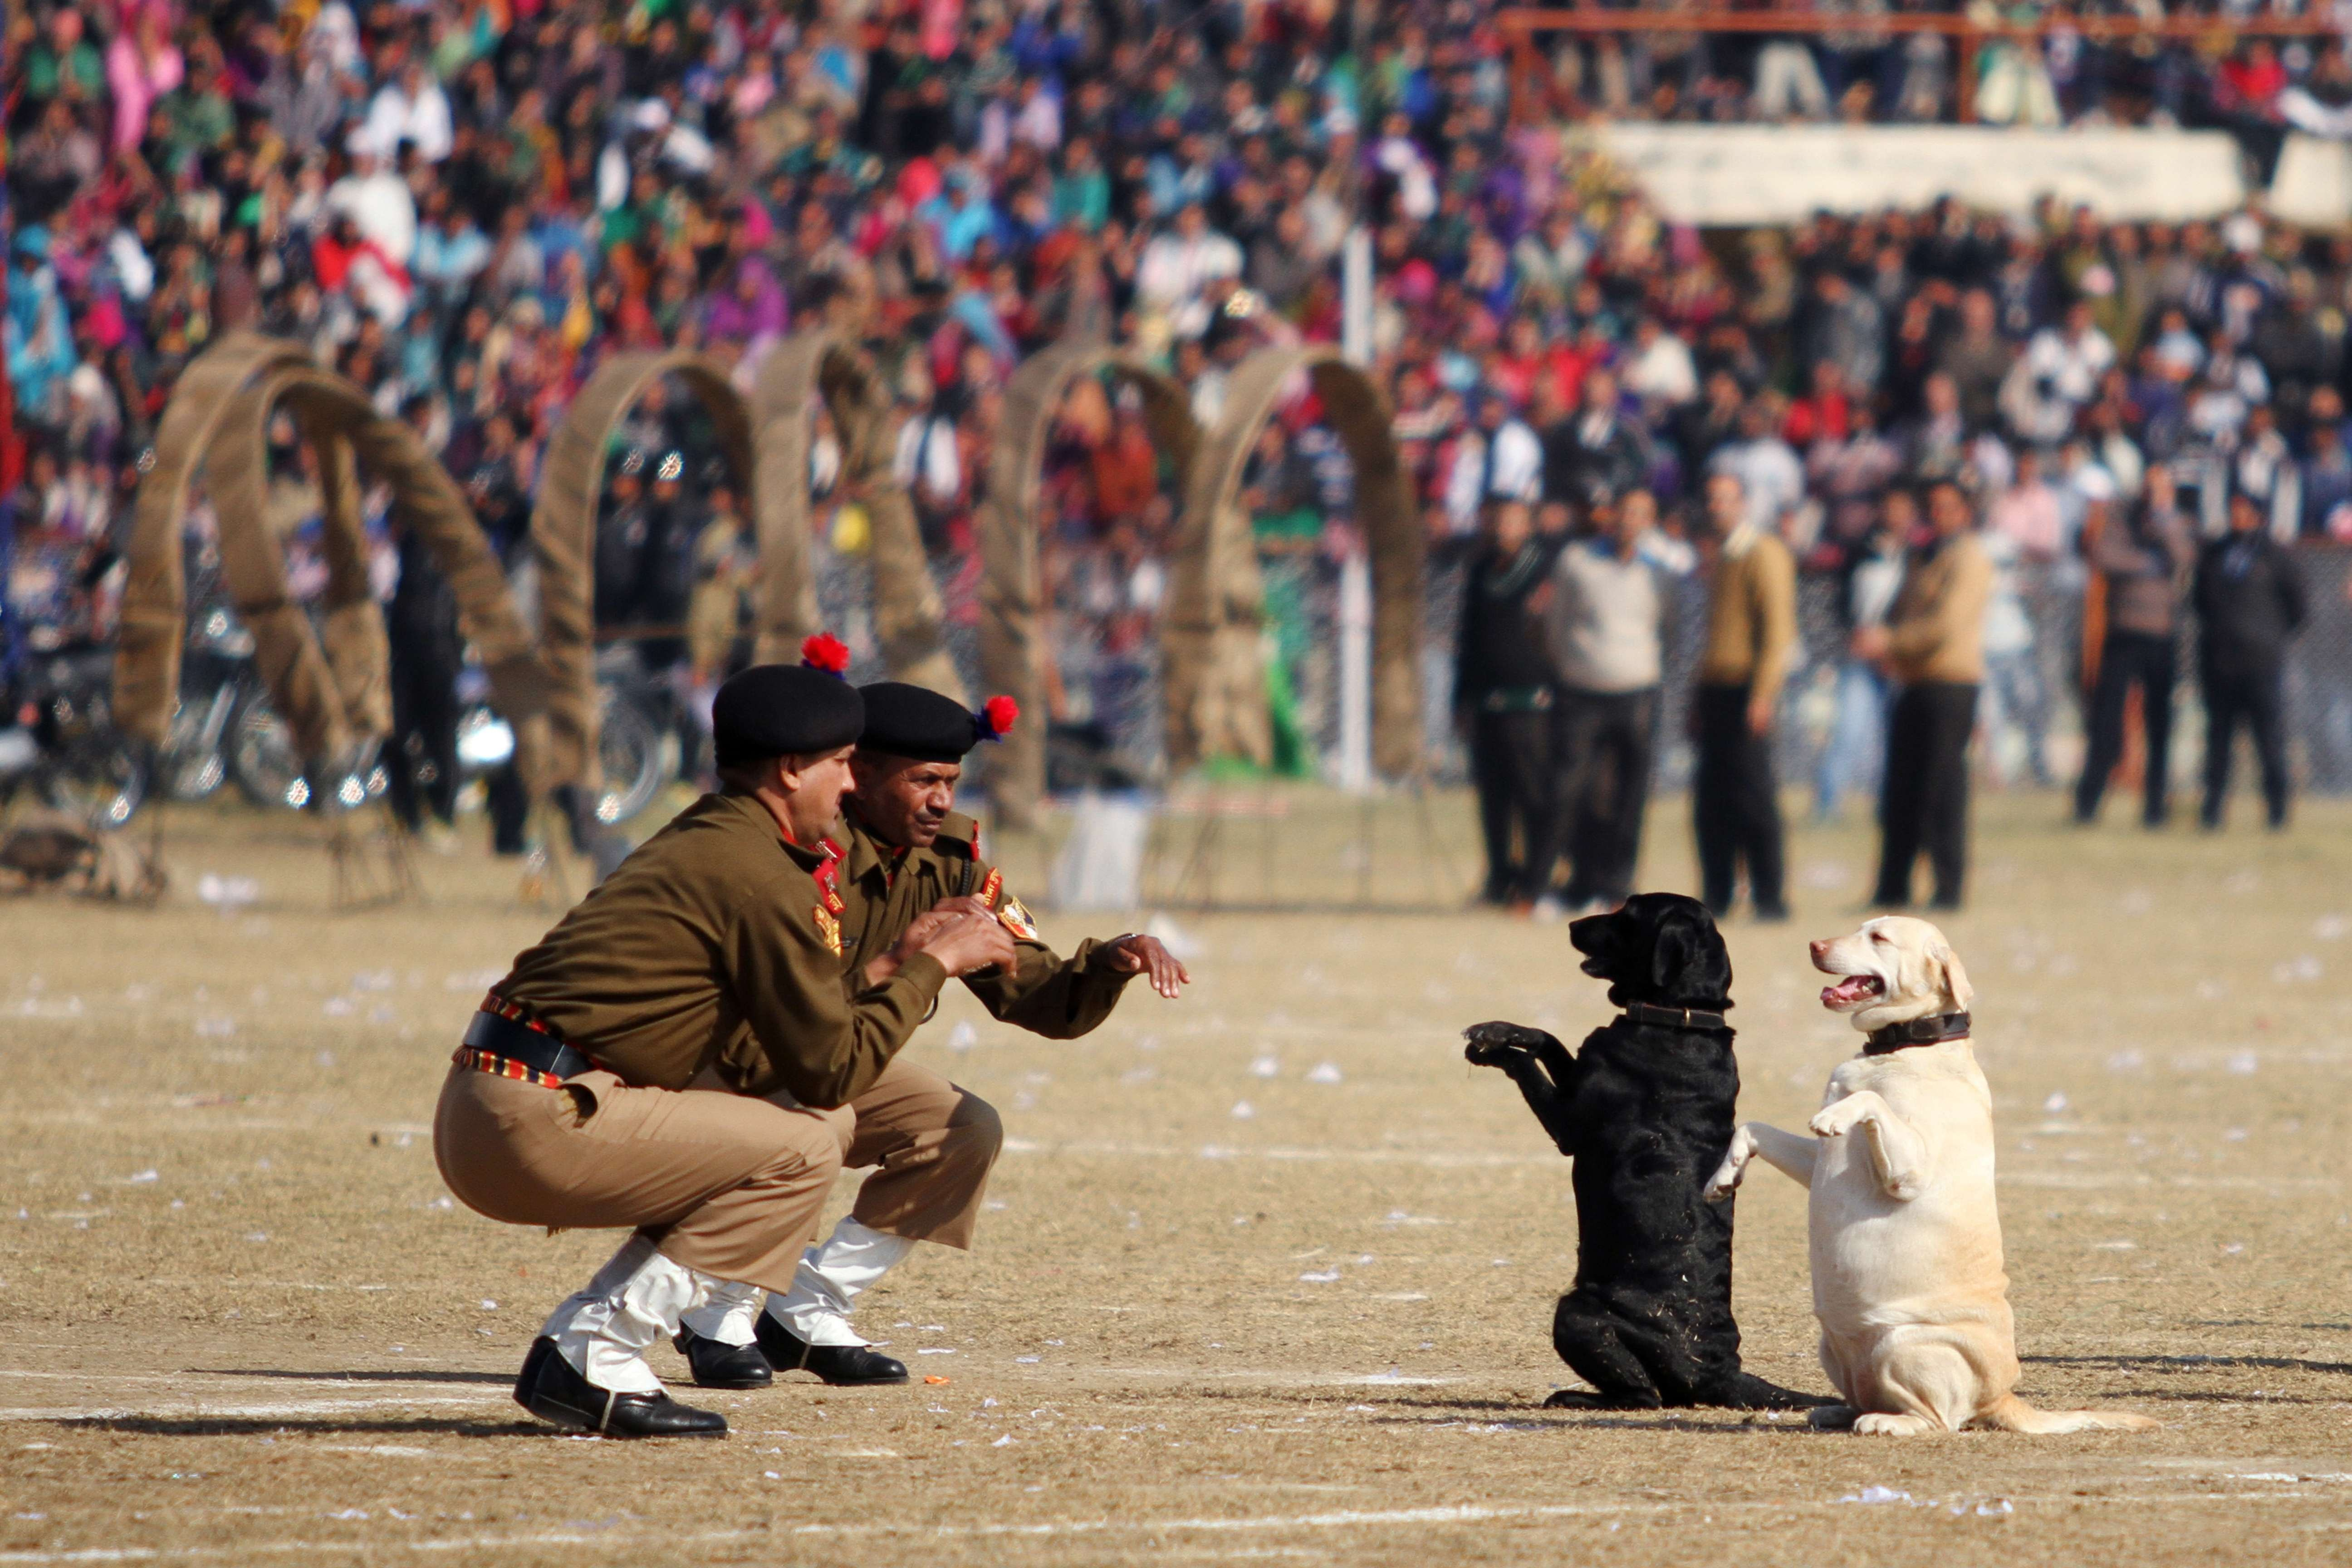 Indian Border Security Force dog squad personnel take part in a march during Republic Day celebrations in Jammu, India, Jan. 26, 2014.